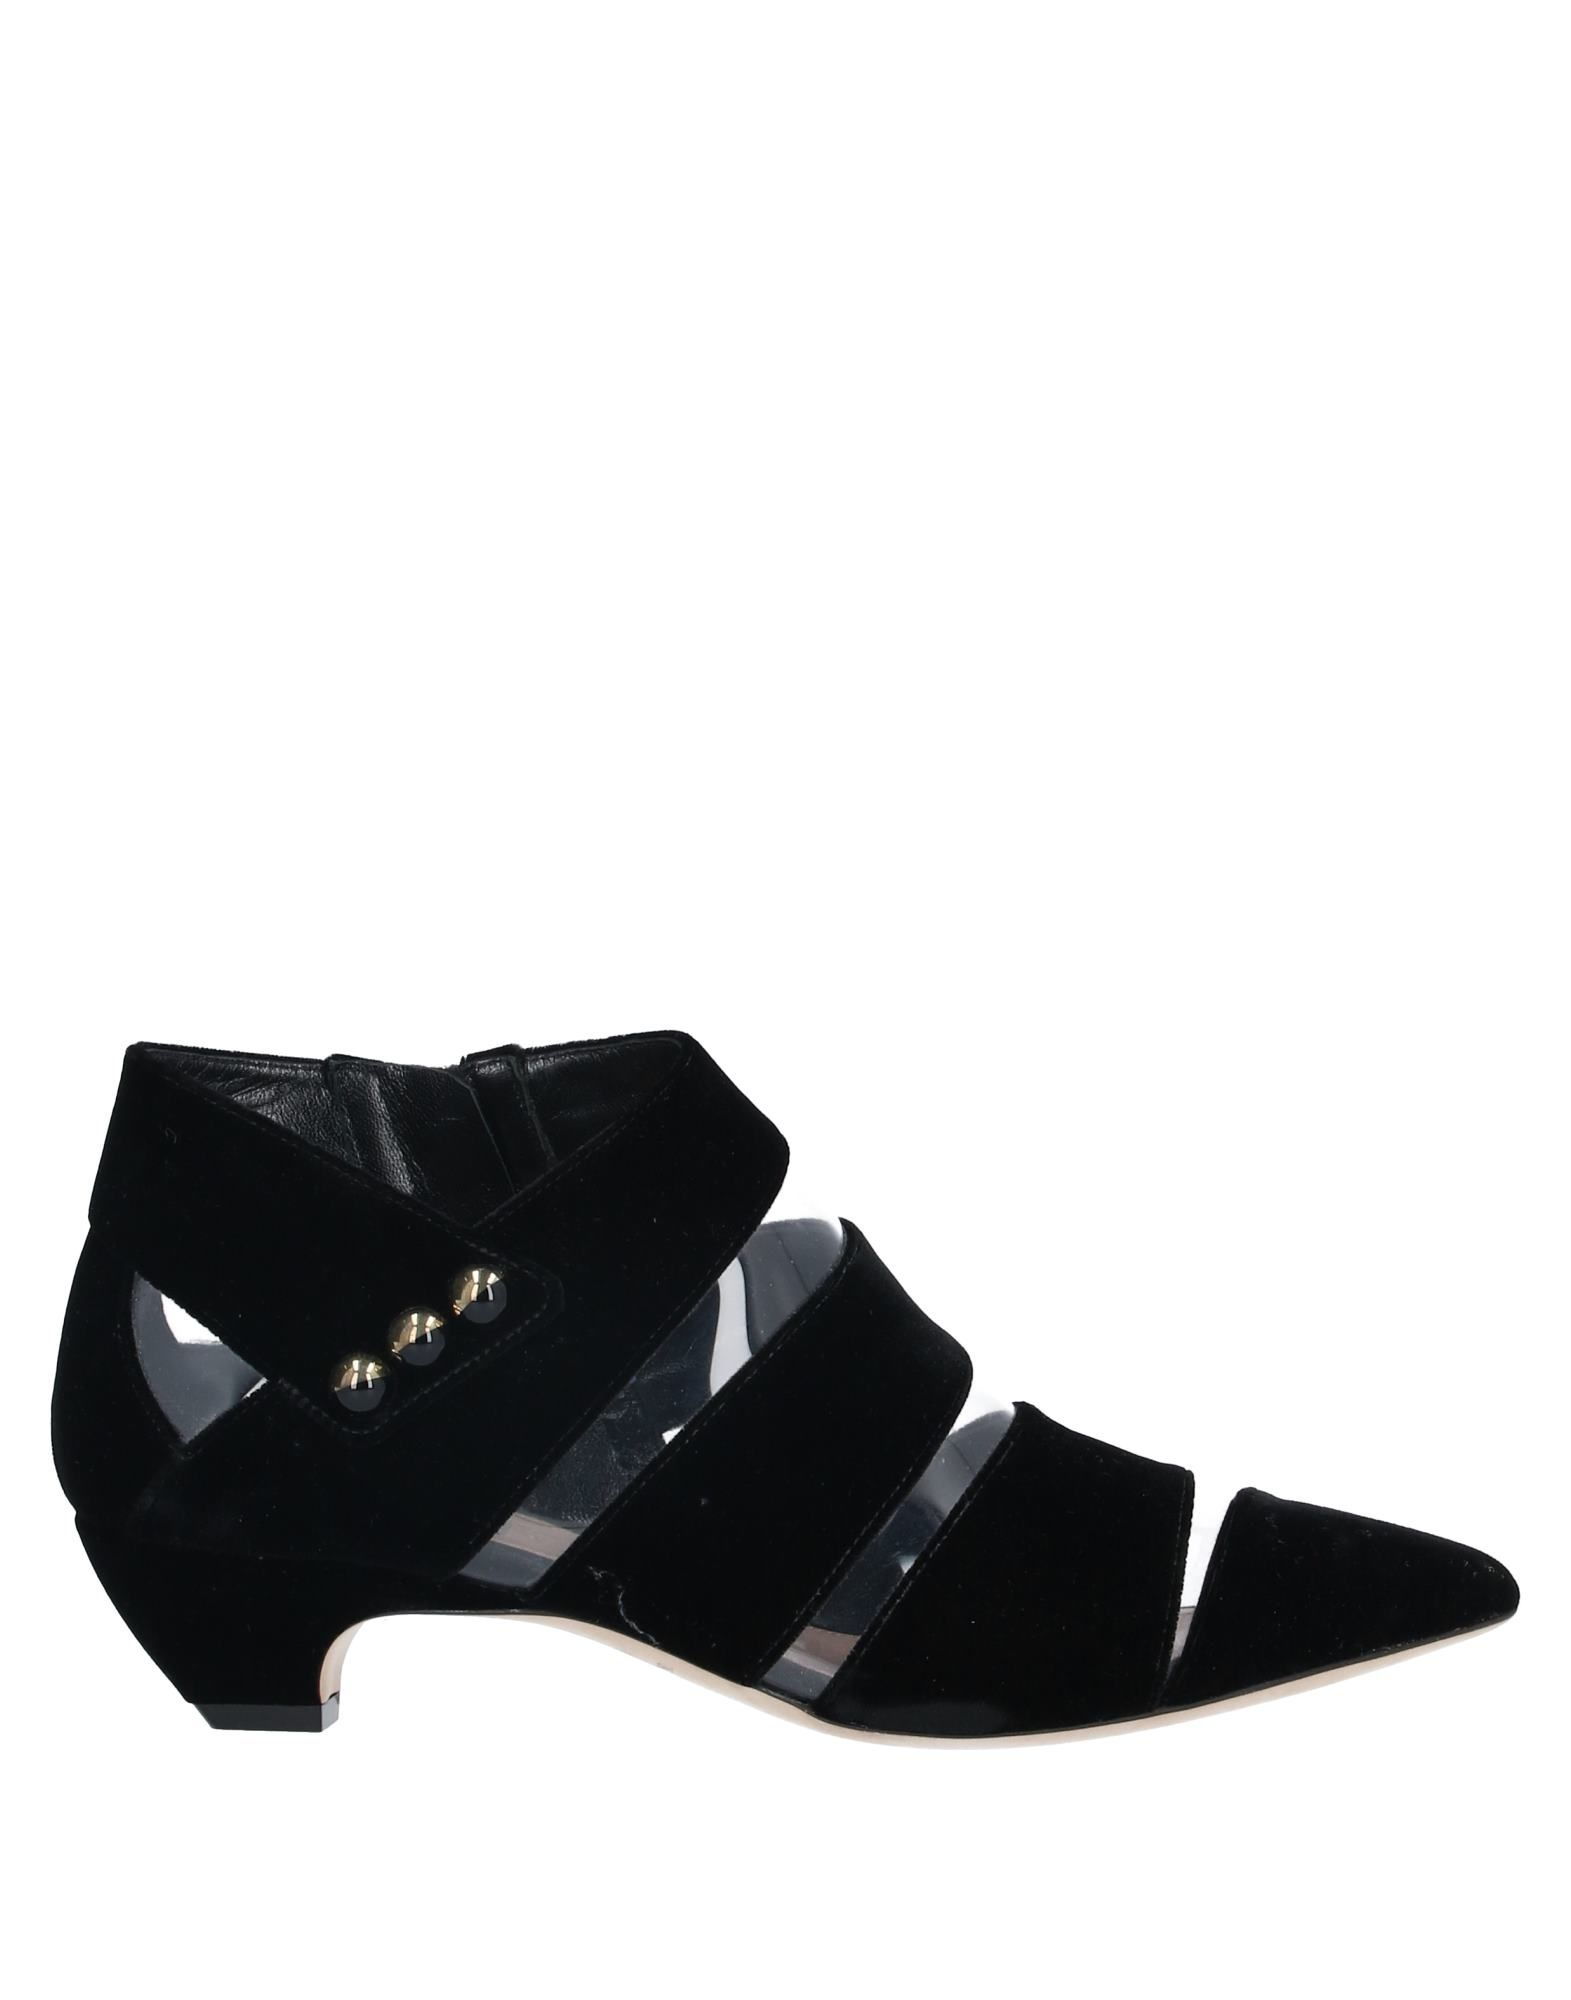 GIORGIO ARMANI Booties. velvet, studs, solid color, zipper closure, narrow toeline, cone heel, covered heel, leather lining, leather/rubber sole, contains non-textile parts of animal origin. 65% Viscose, 35% Cupro, PVC - Polyvinyl chloride